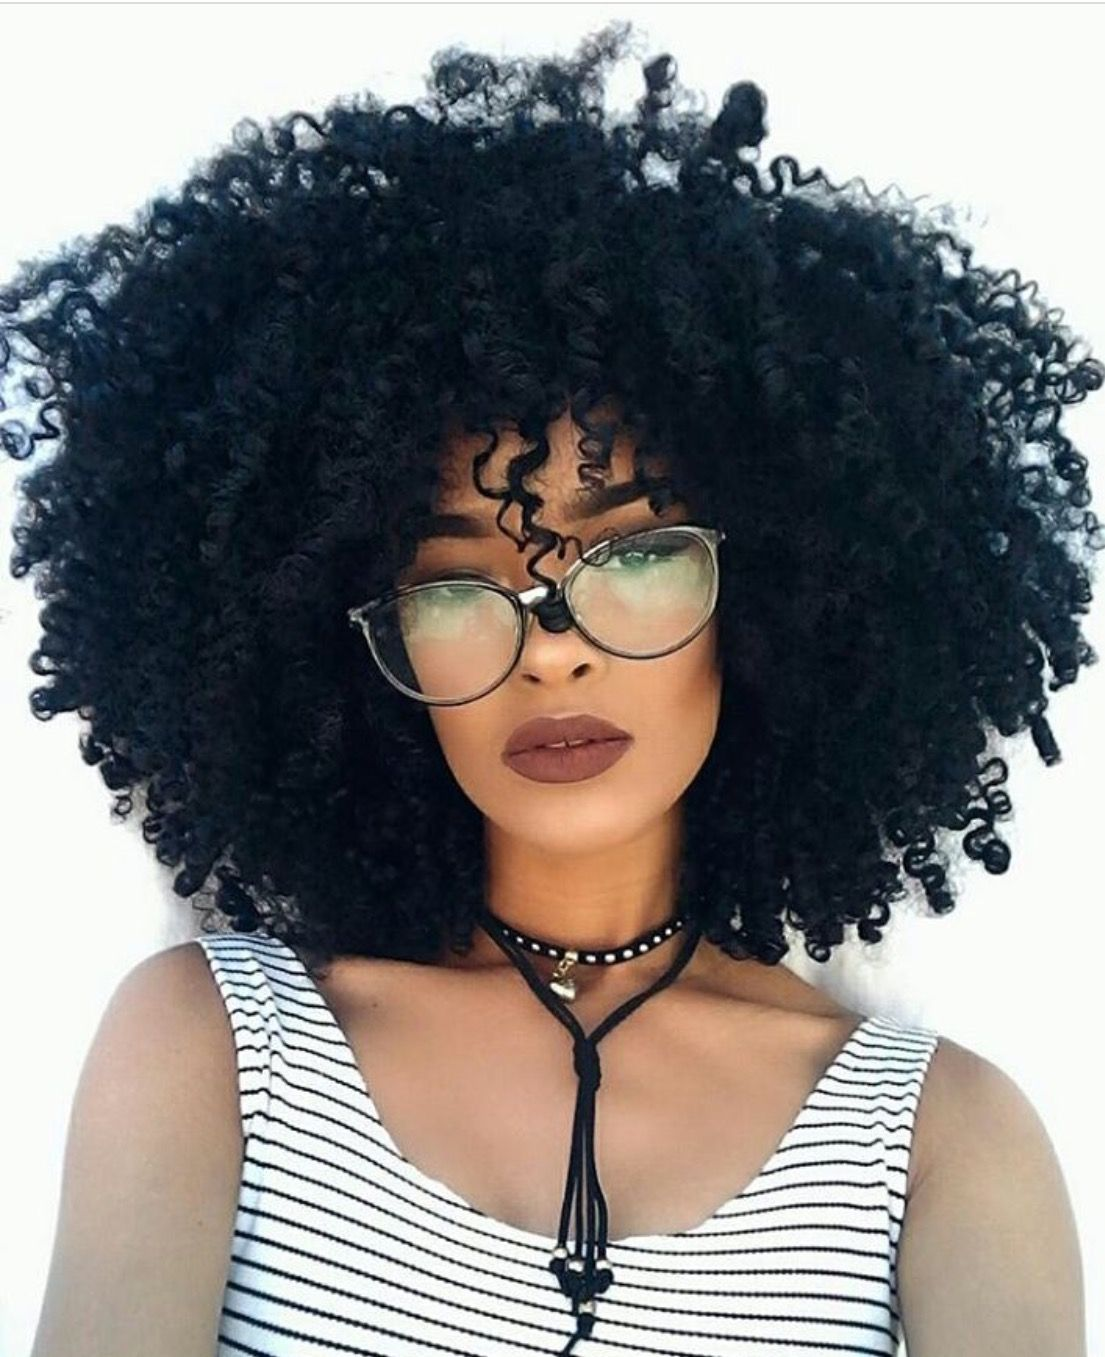 Pin by Awkward Artist on love your pretty cute curly hair an be out ... 2e1af77e4c